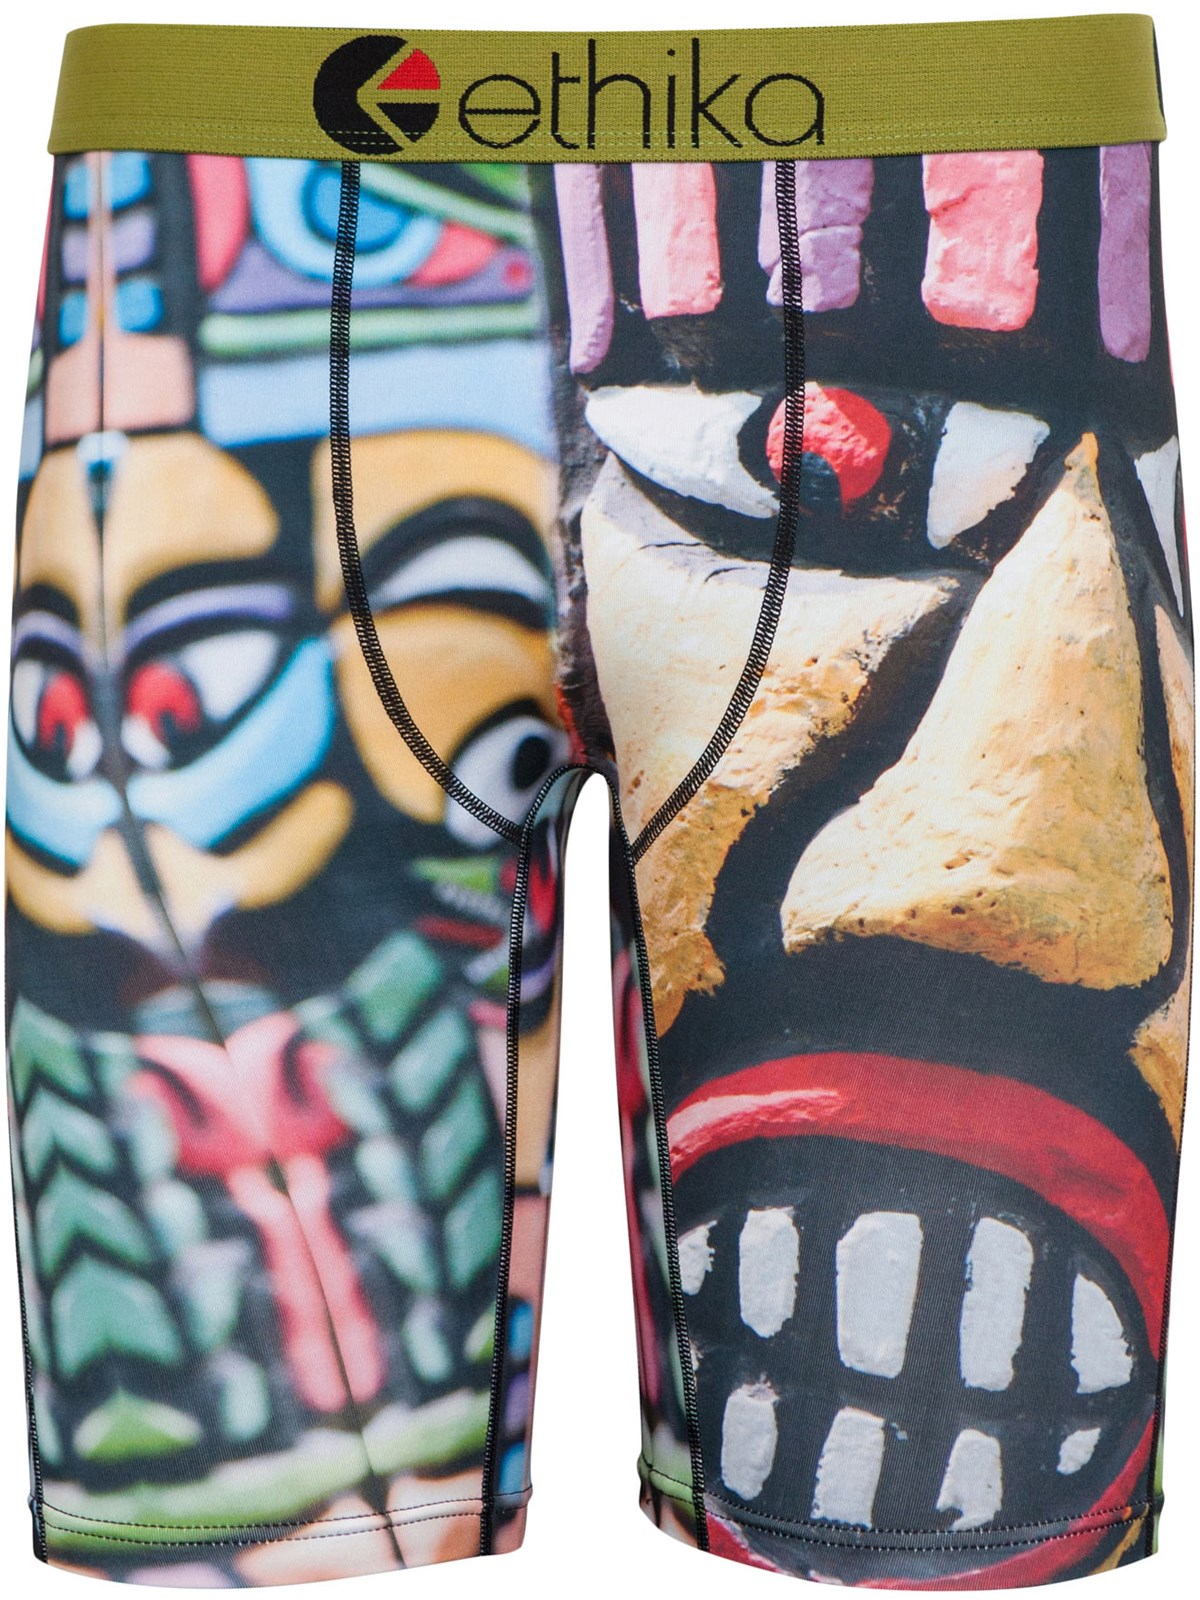 Ethika Too Cool Totem-Assorted